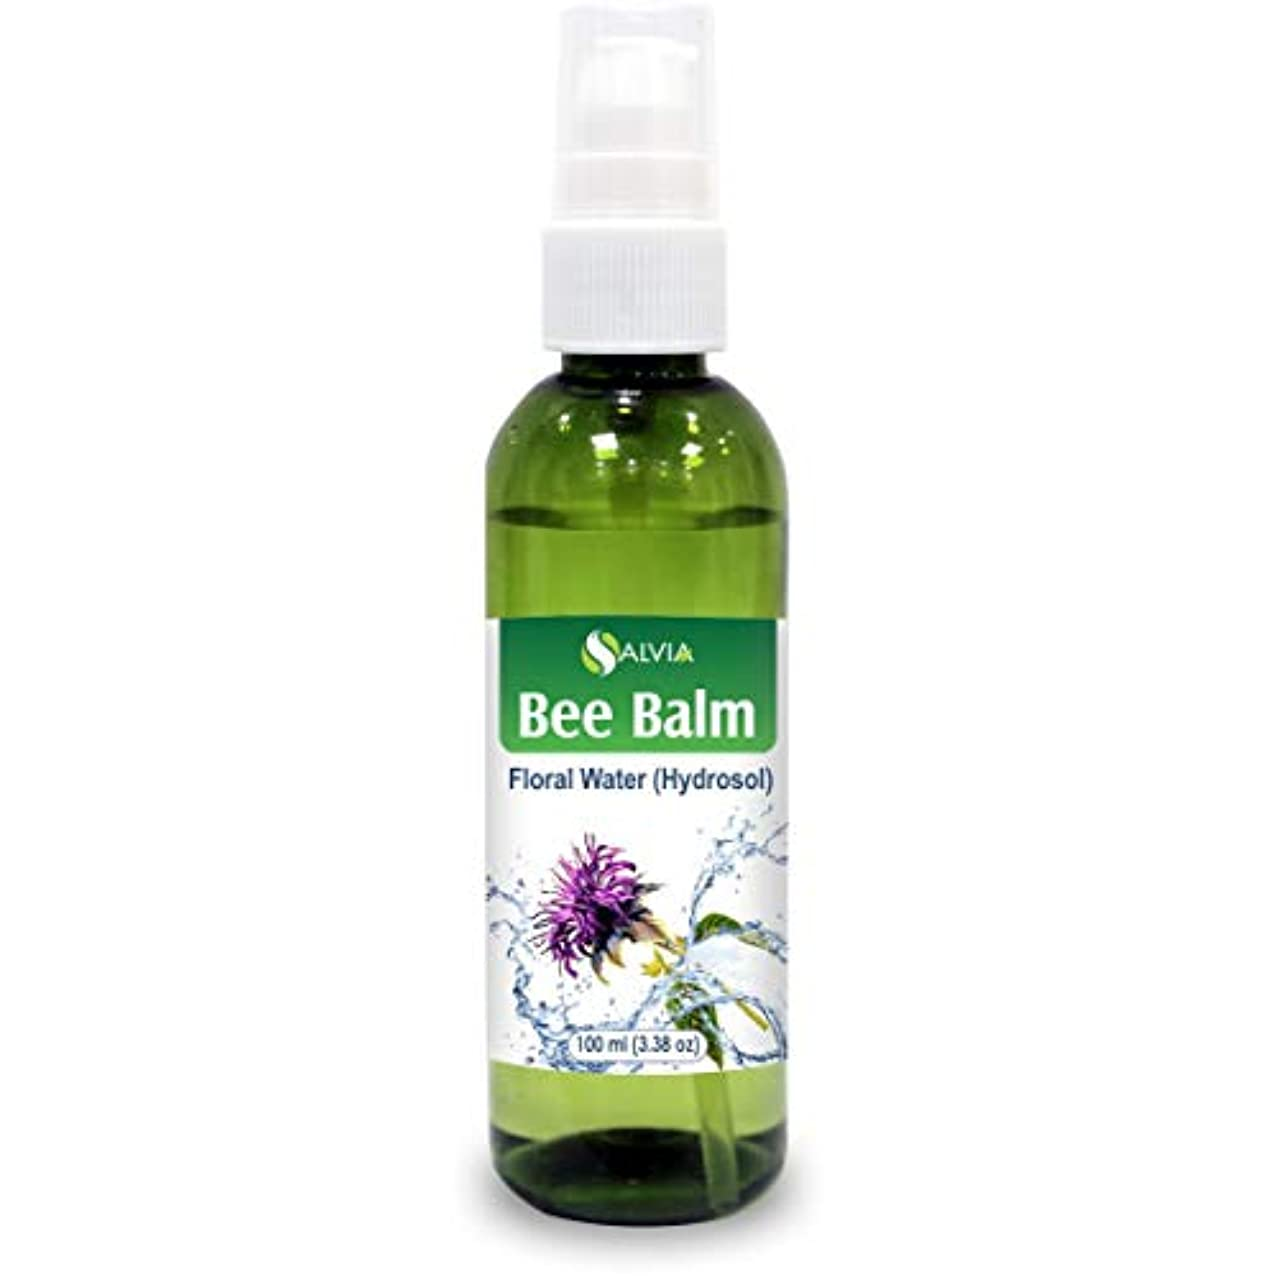 不機嫌そうなブロー香りBee Balm Floral Water 100ml (Hydrosol) 100% Pure And Natural